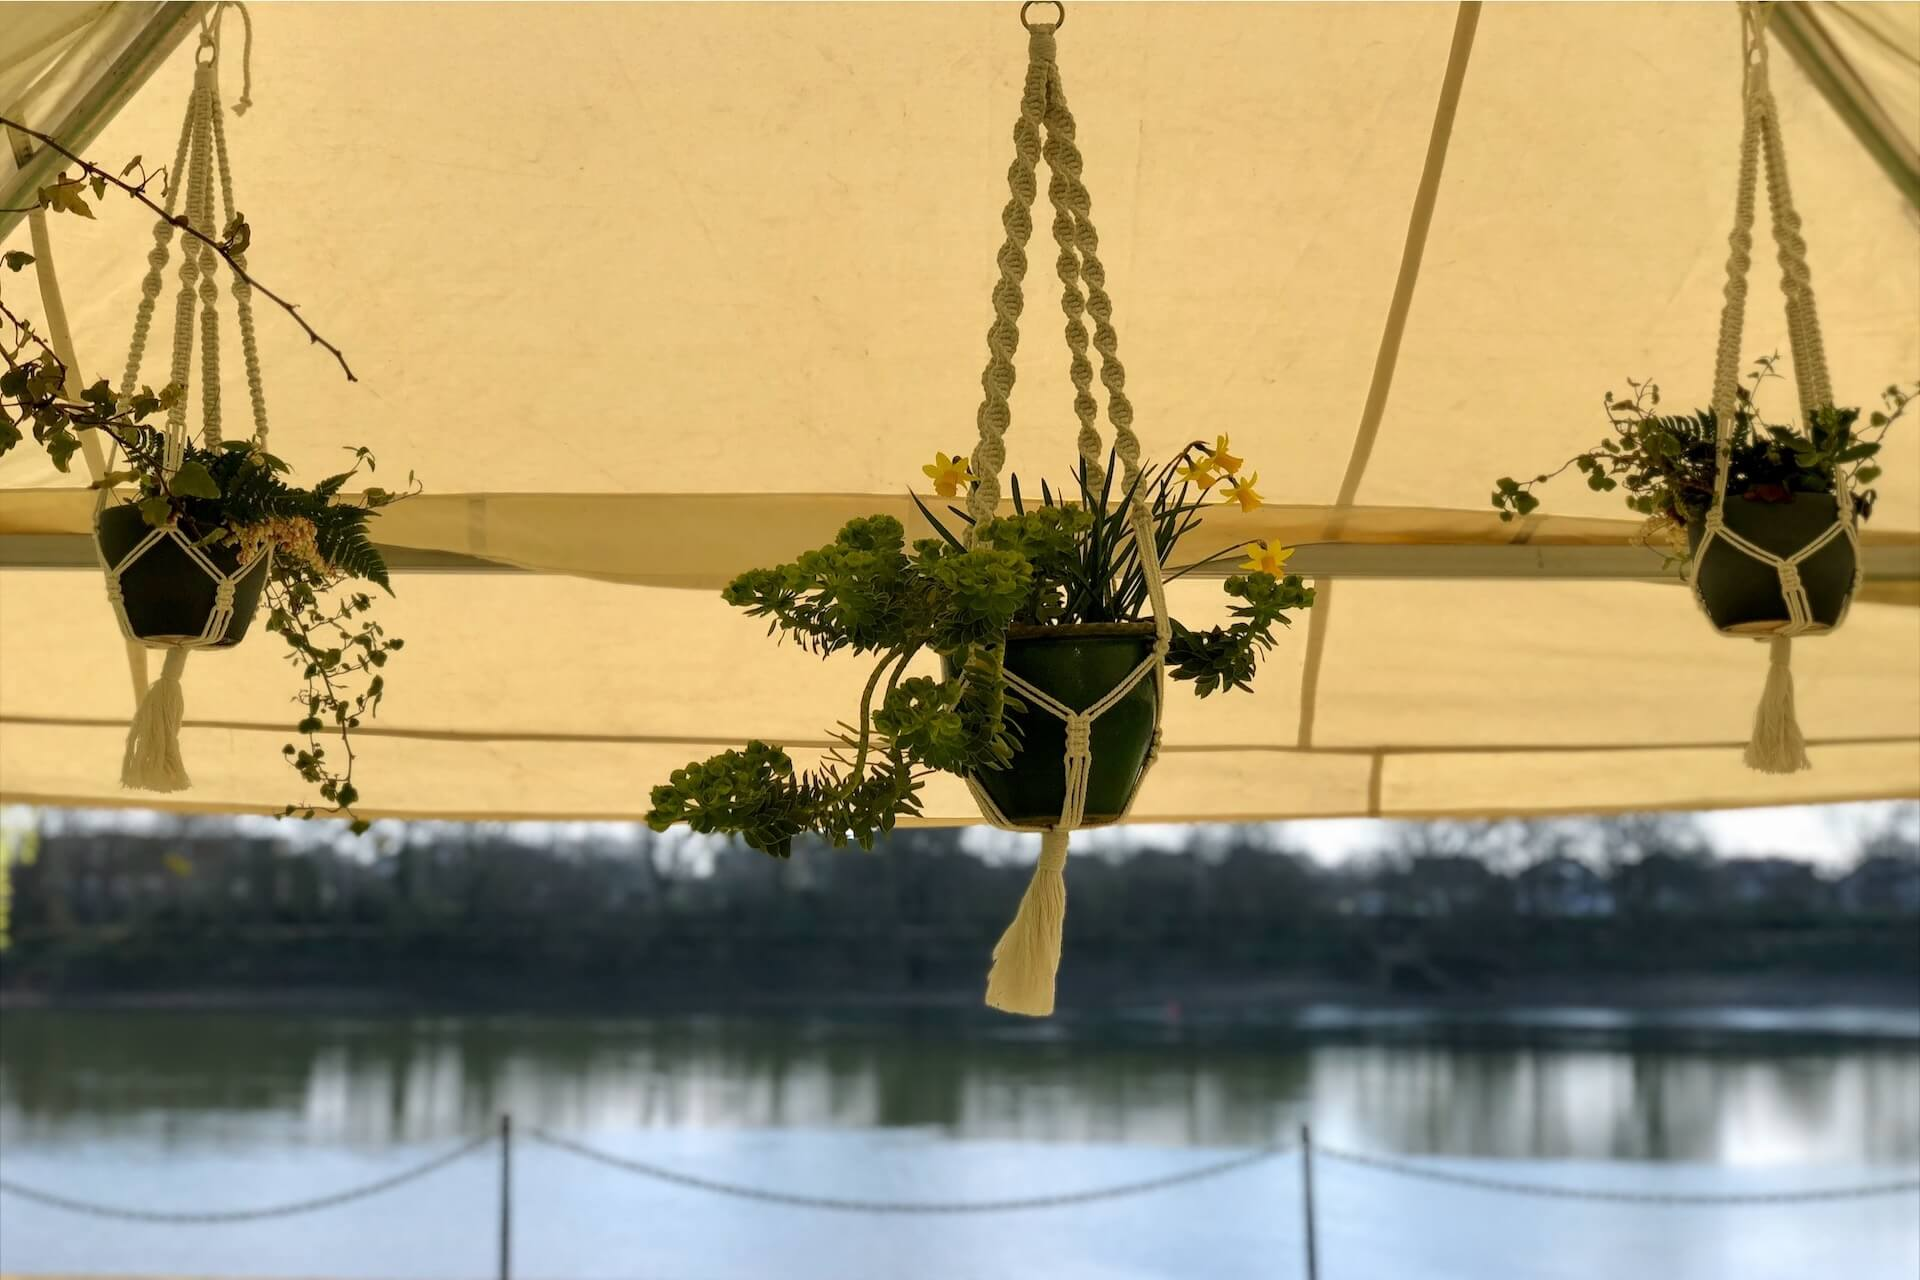 plants hung in macrame hangers inside a marquee